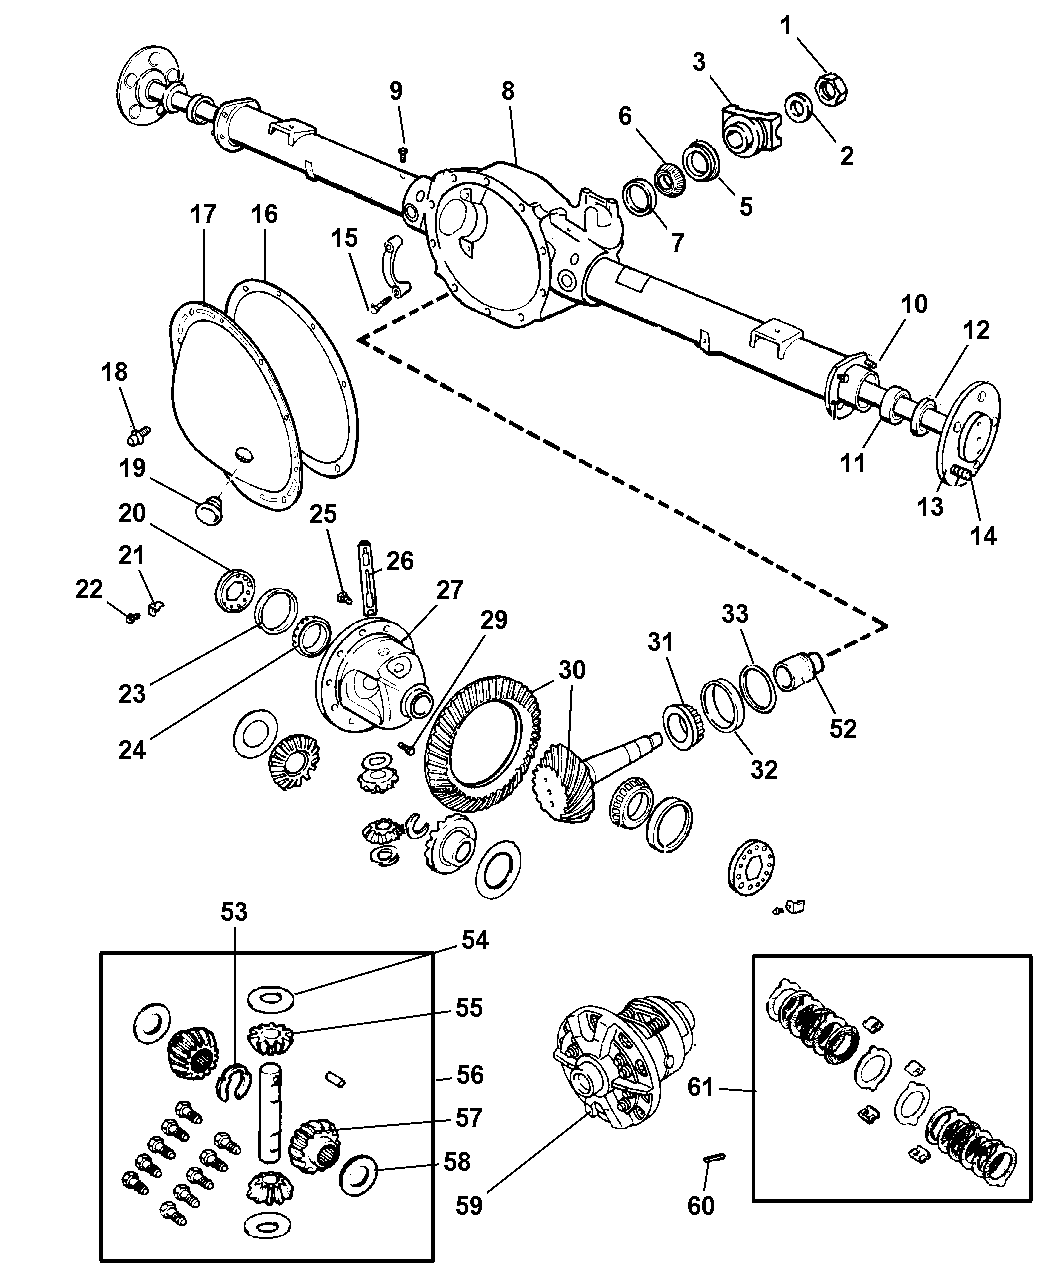 2003 Jeep Liberty Axle, Rear, With Differential And Housing